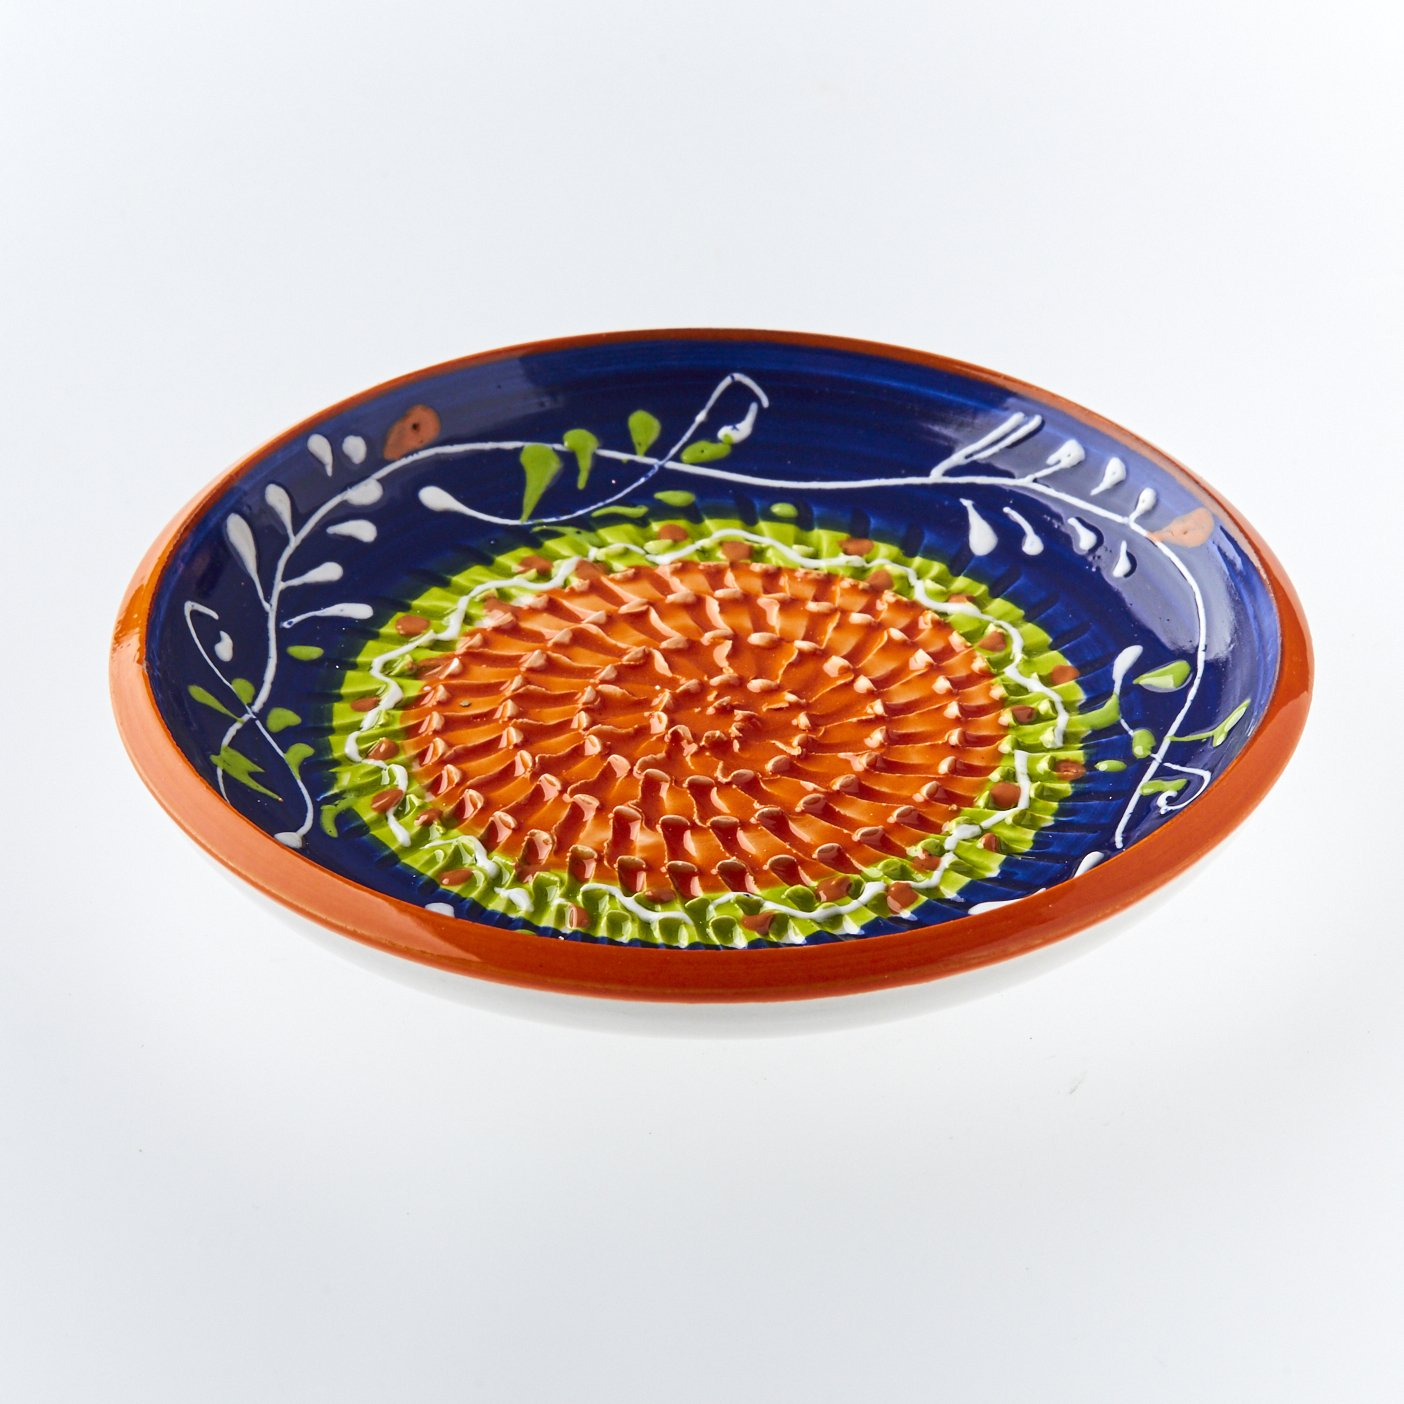 Garlic Grater Plate by The Great Garlic Grater. Handmade and Hand painted in Cordoba, Spain. Dispatched from the UK. Blue with green and orange circle. Wild flowers. No. 4 RUPI